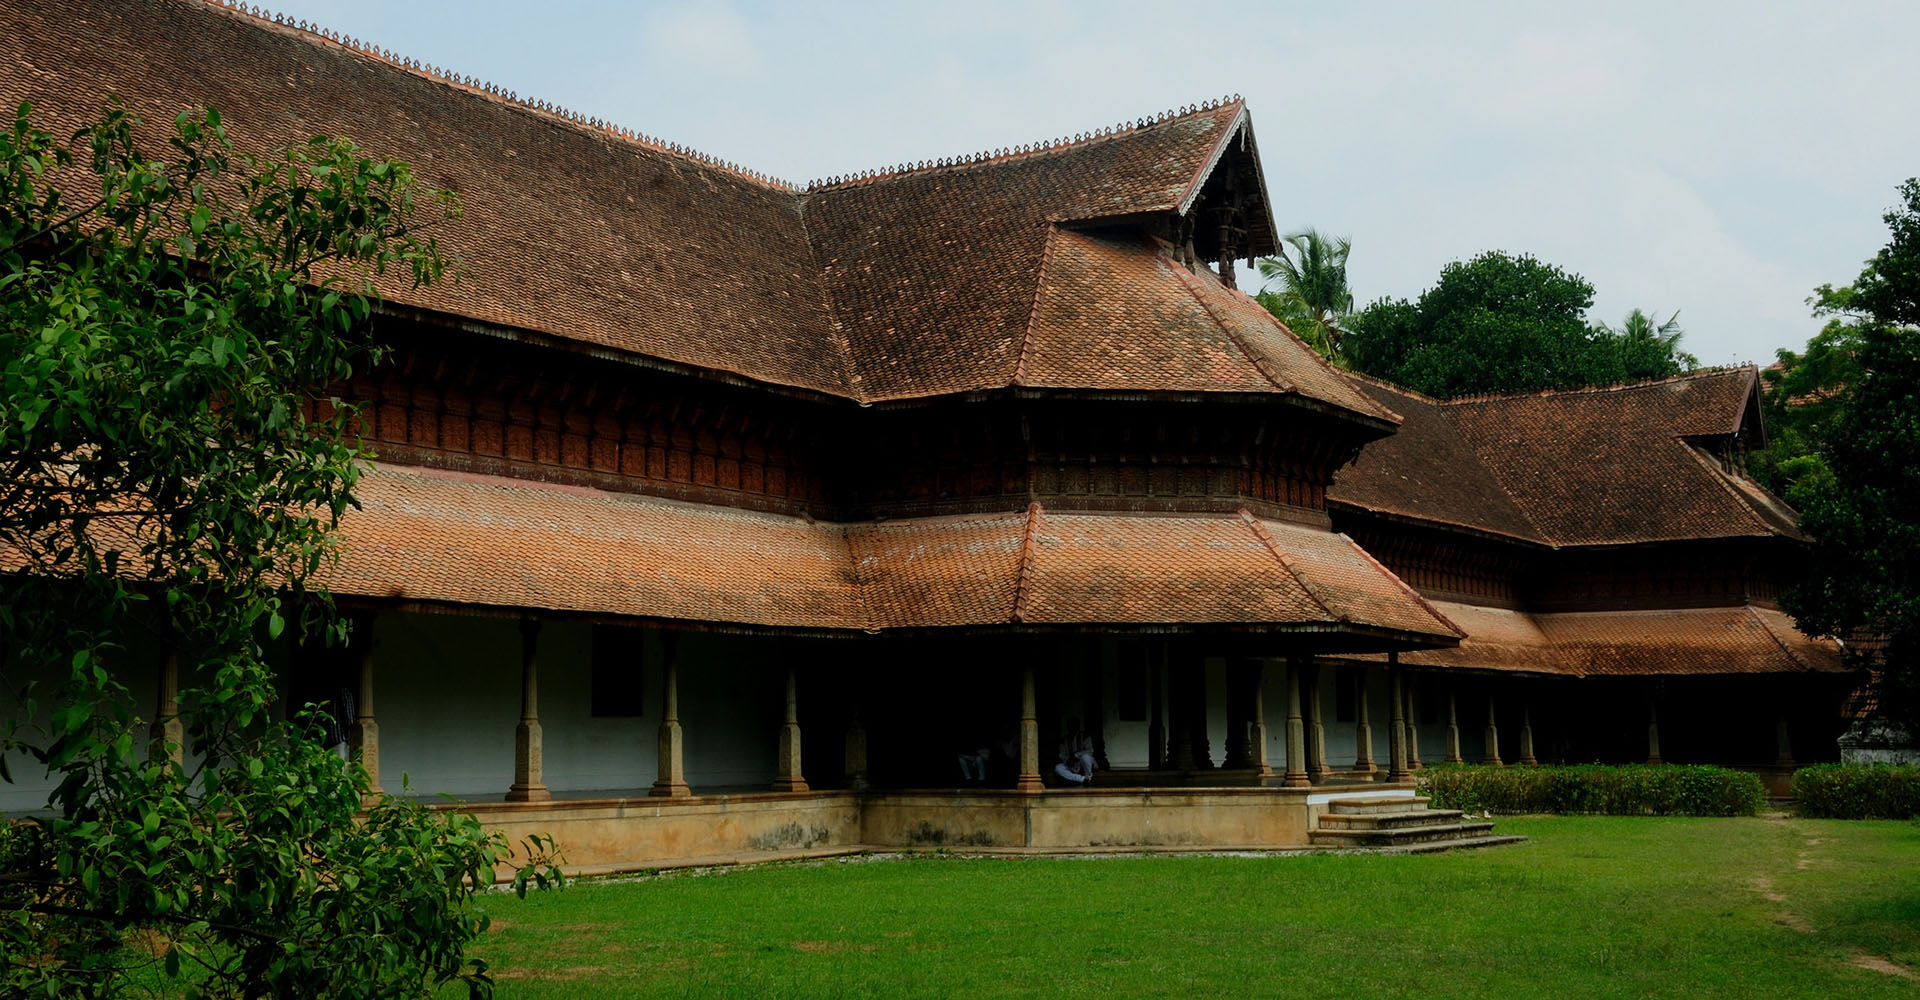 Trivandrum – Where Travancore still lives on